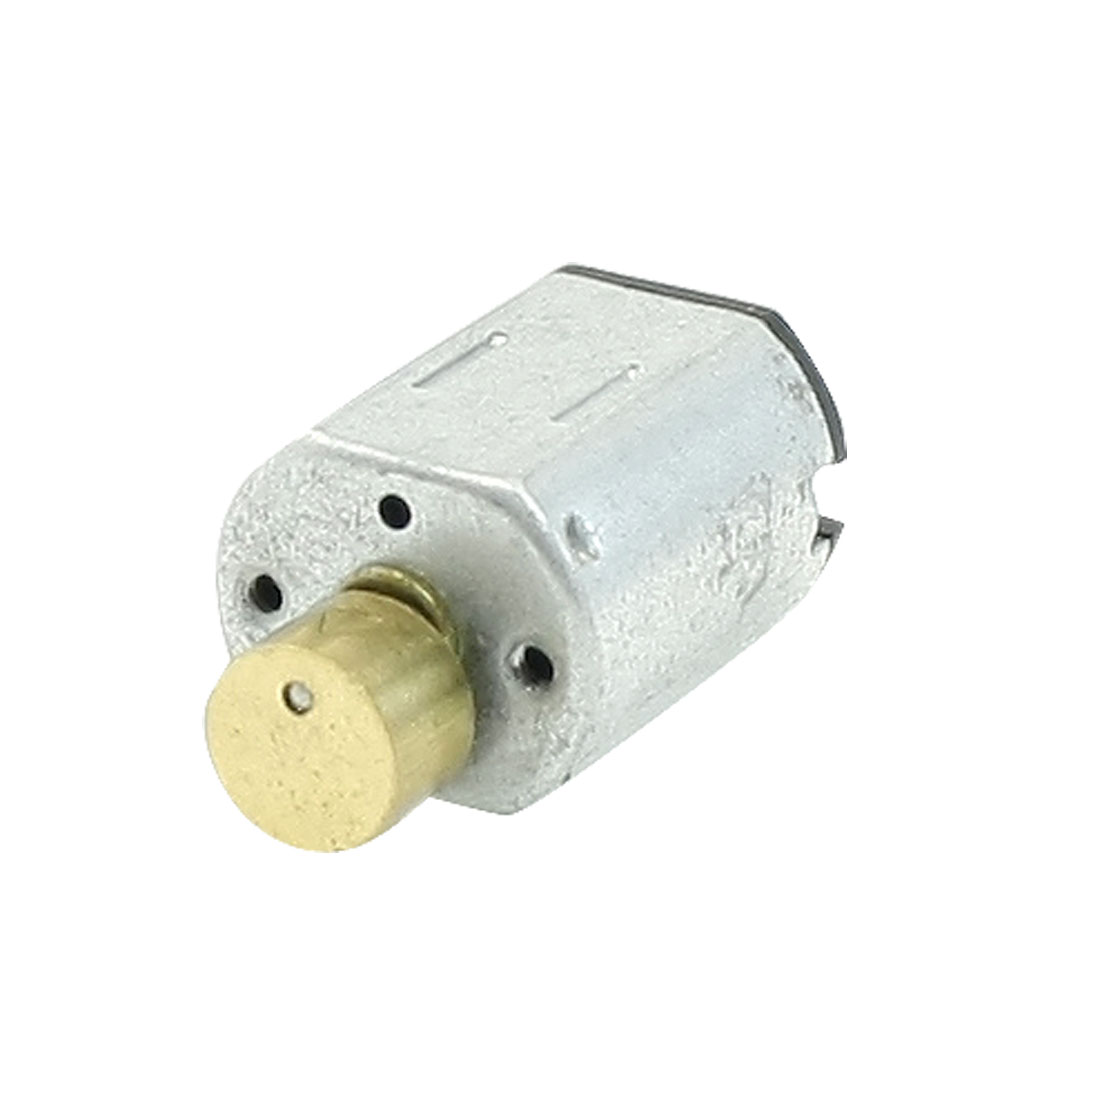 DC 1.5V 1200RPM Mini Vibrating Vibration Motor N20